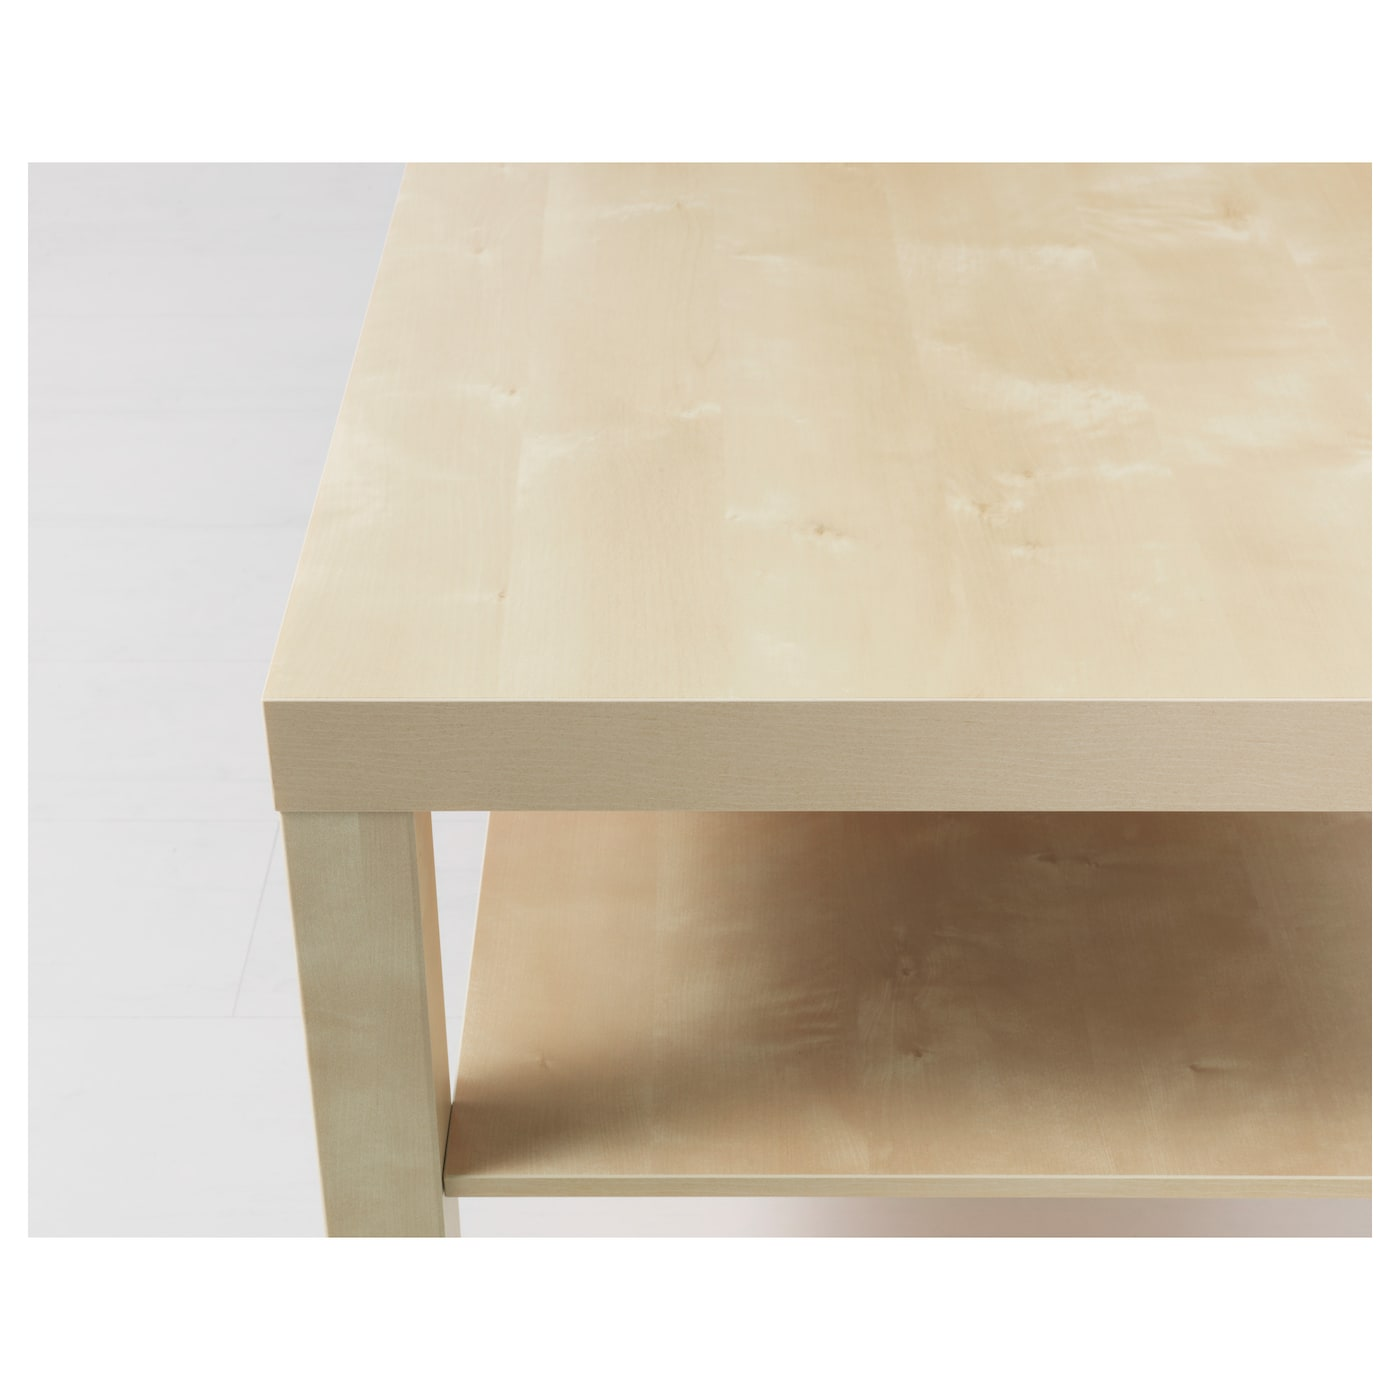 LACK Coffee table Birch effect 90x55 cm IKEA